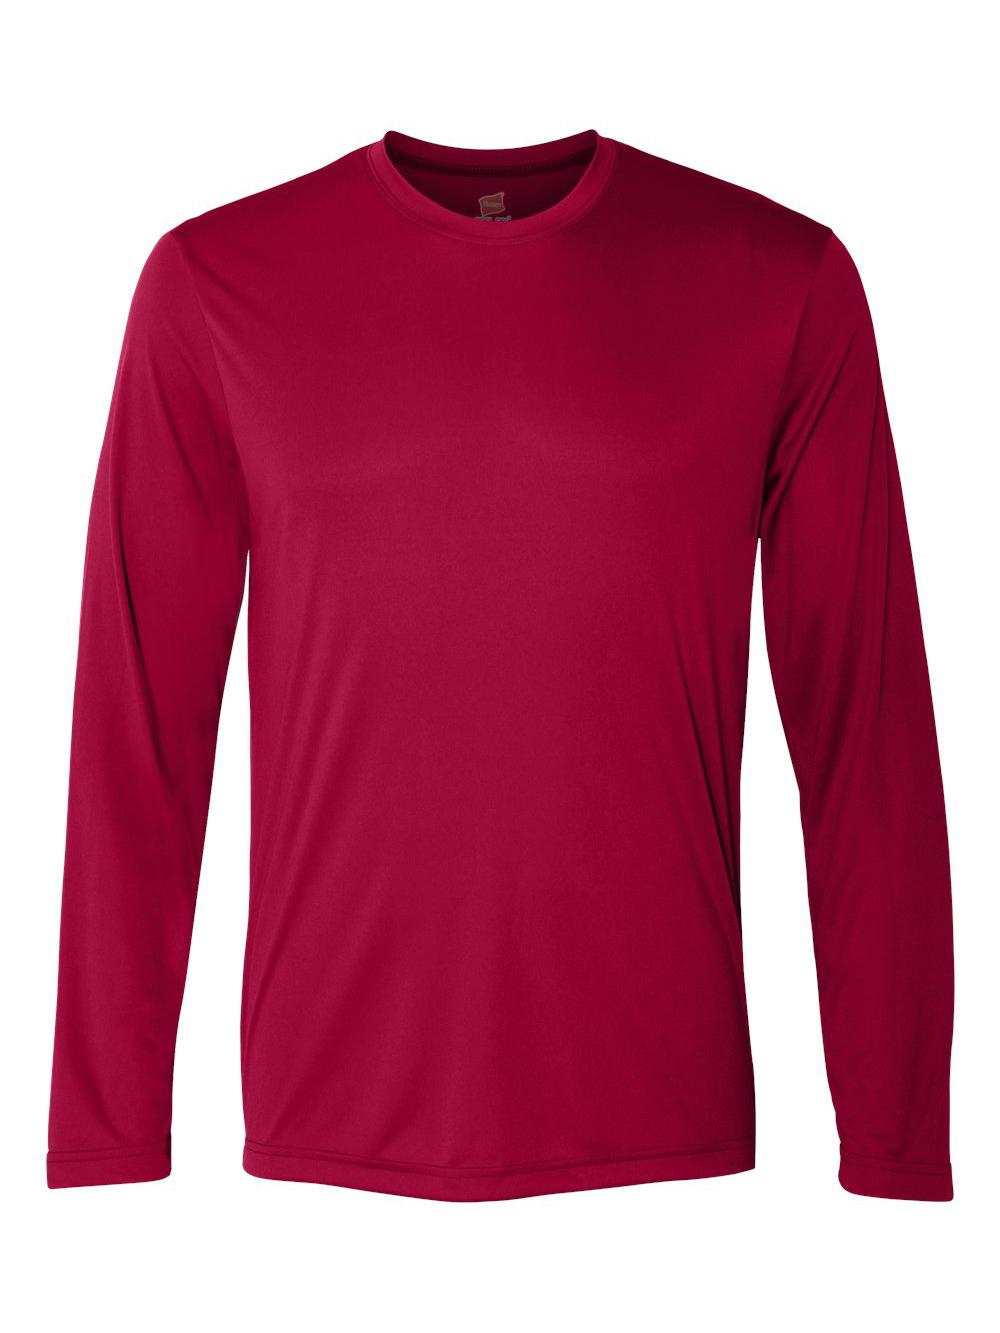 Hanes-Cool-Dri-Long-Sleeve-Performance-T-Shirt-482L thumbnail 6